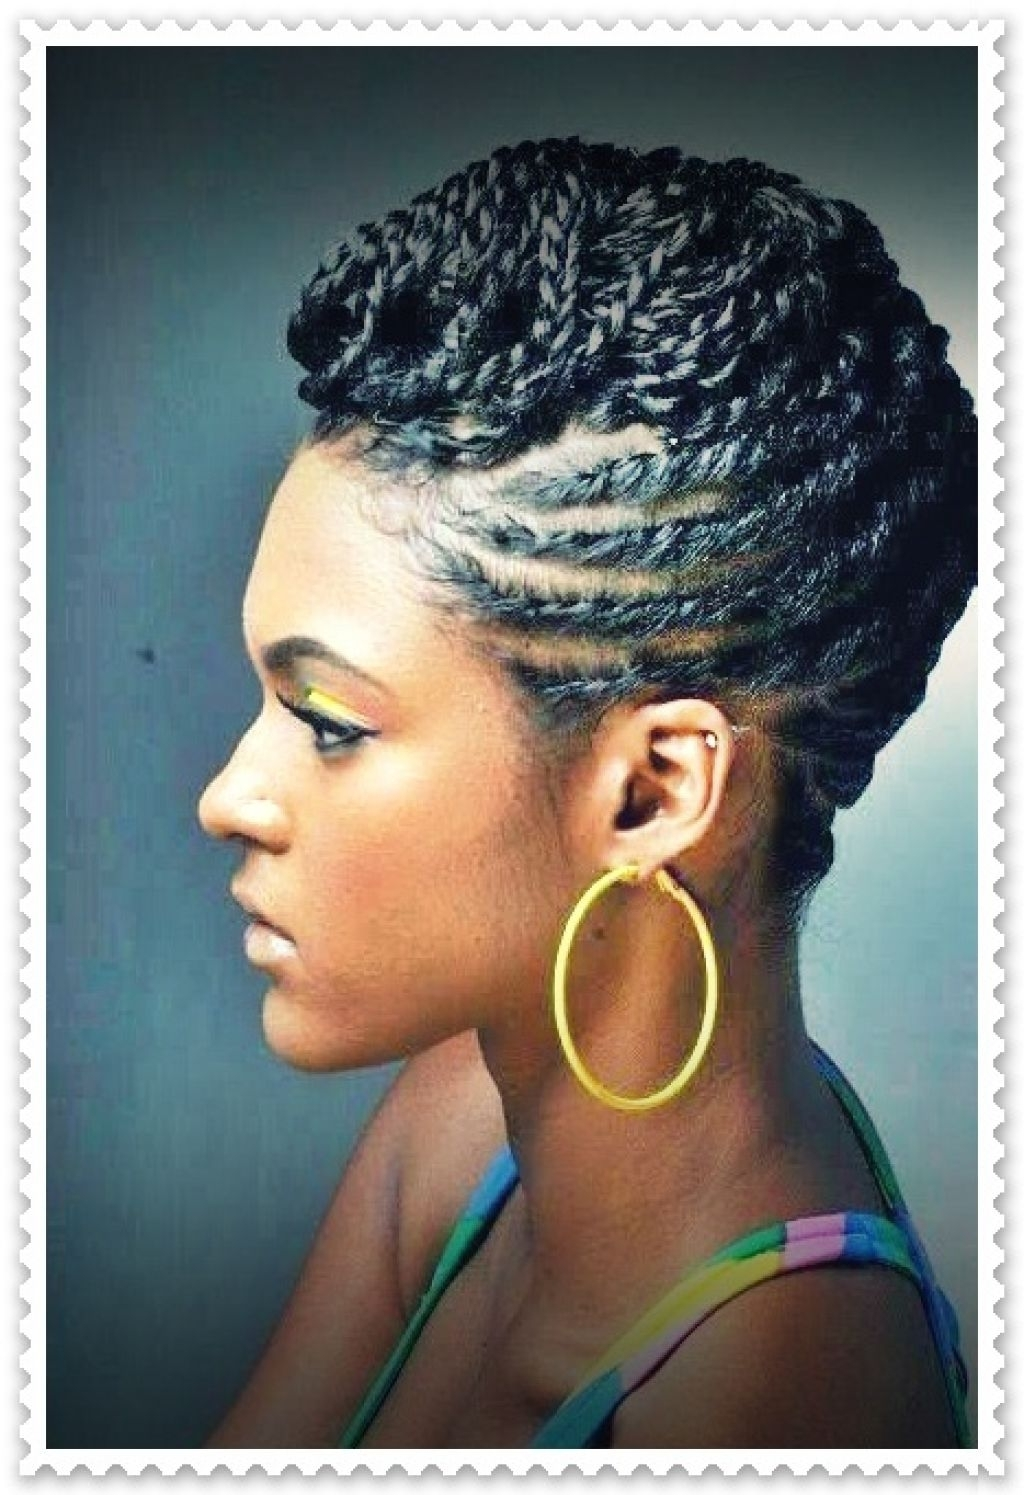 Braided Black Hairstyles Ideas With Braided Black Hairstyles Inside Elegant Cornrow Updo Hairstyles (View 12 of 15)